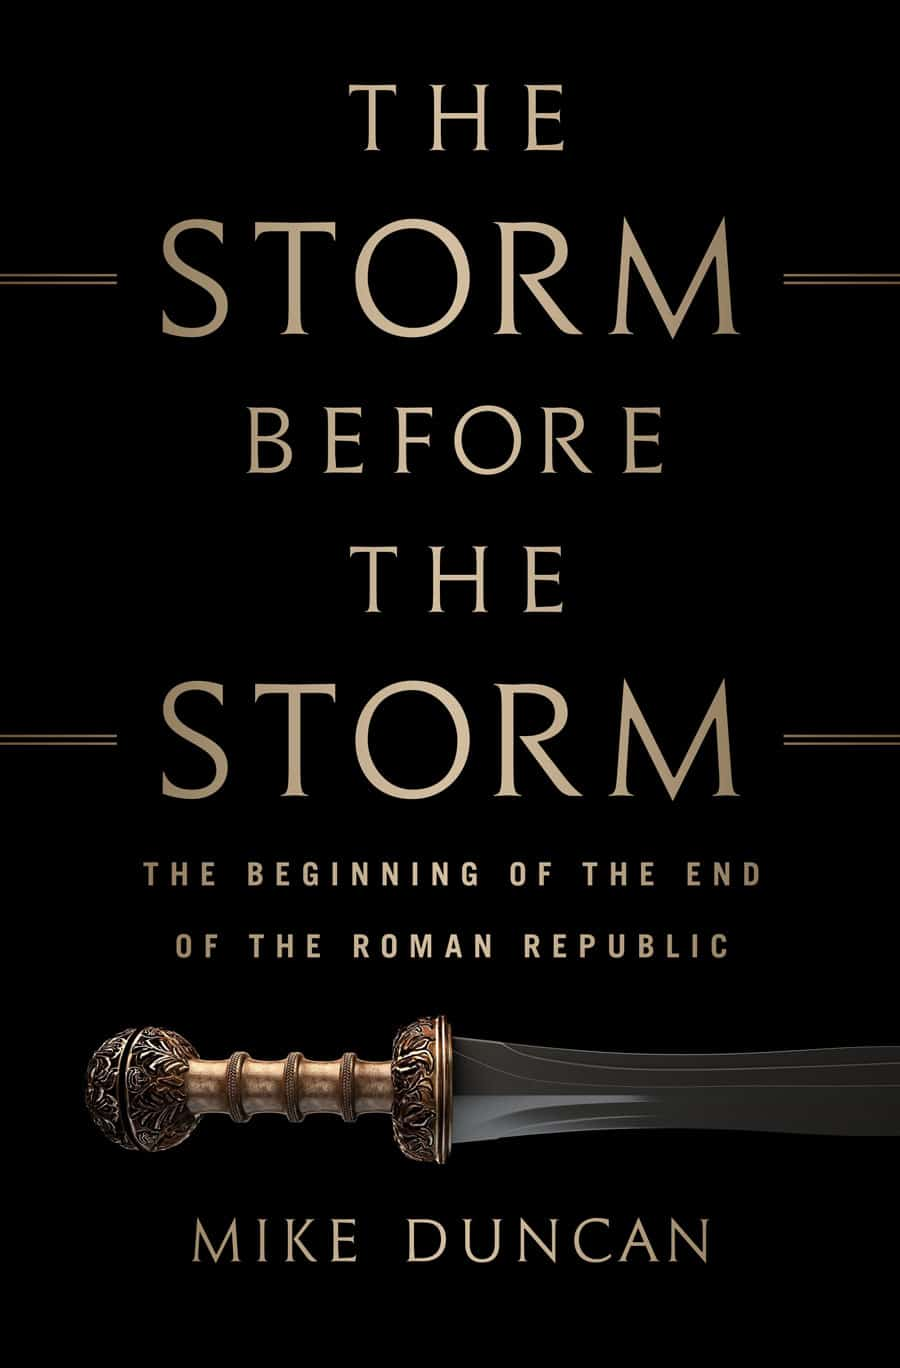 storm before the storm book cover mike duncan